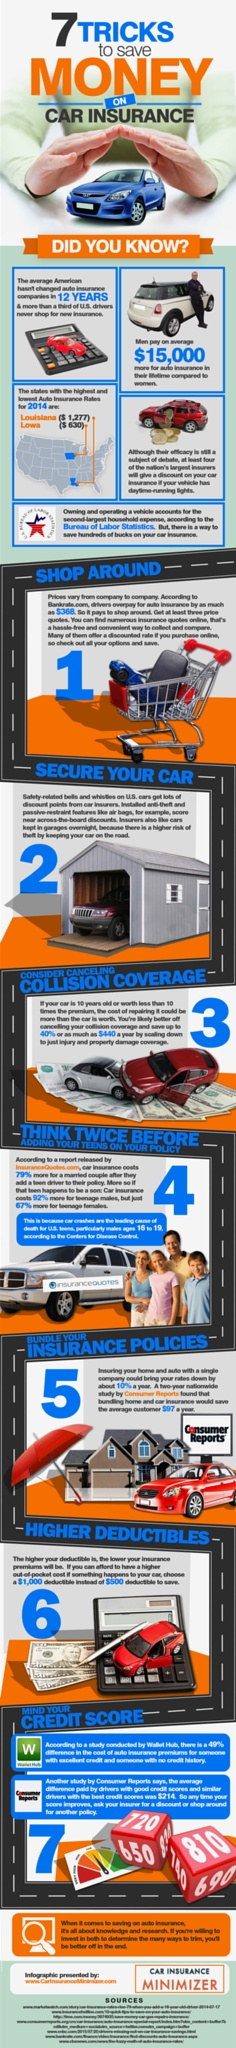 7 Tricks To Save Money On Car Insurance by Jufcy